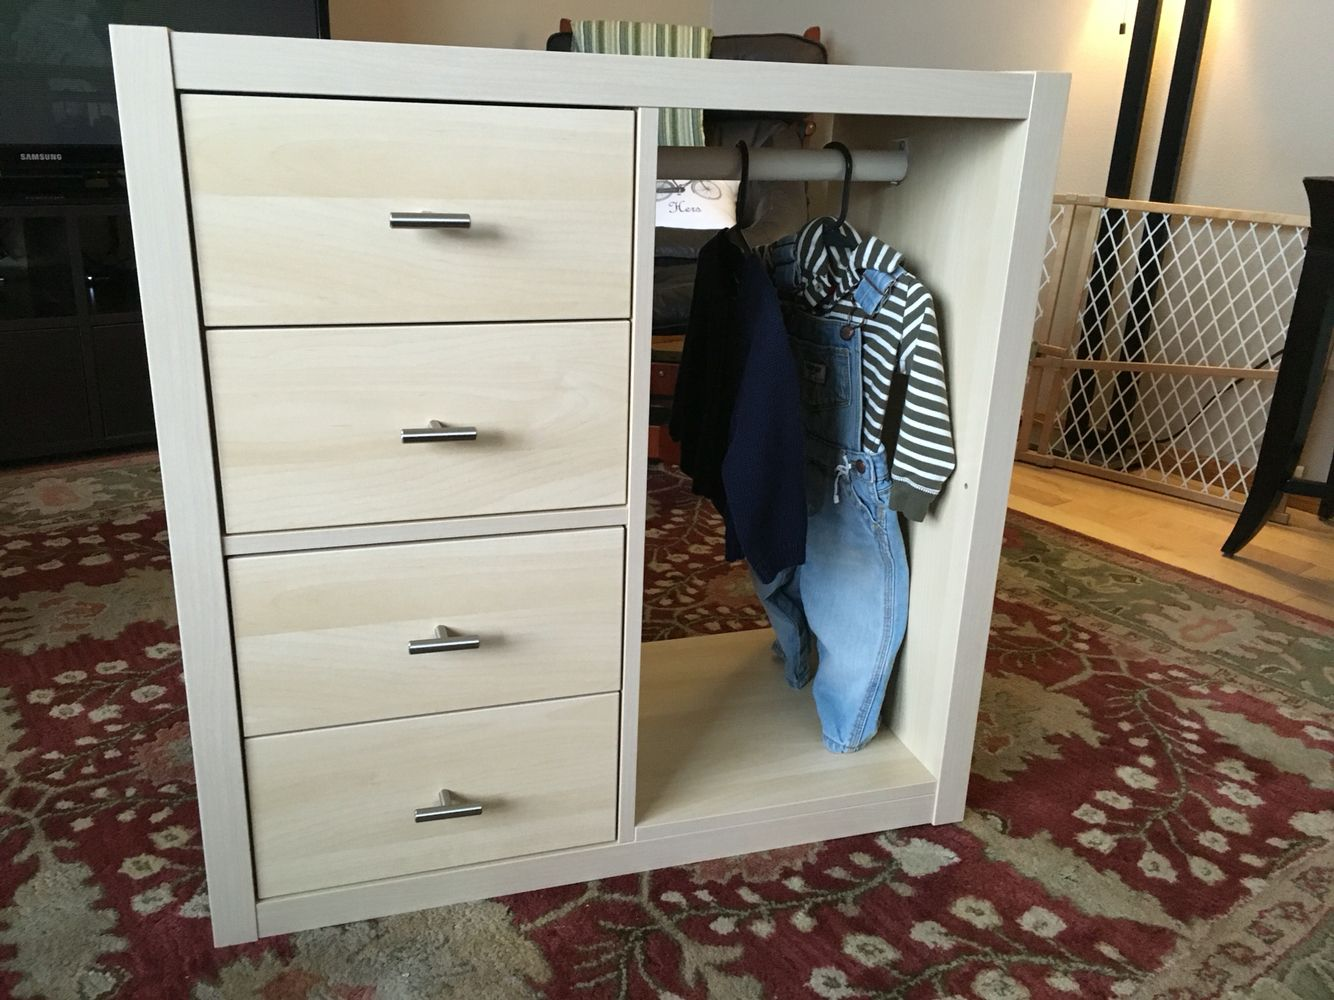 ikea hack of kallax shelf to make a montessori wardrobe with 4 drawers and custom hardware for a. Black Bedroom Furniture Sets. Home Design Ideas